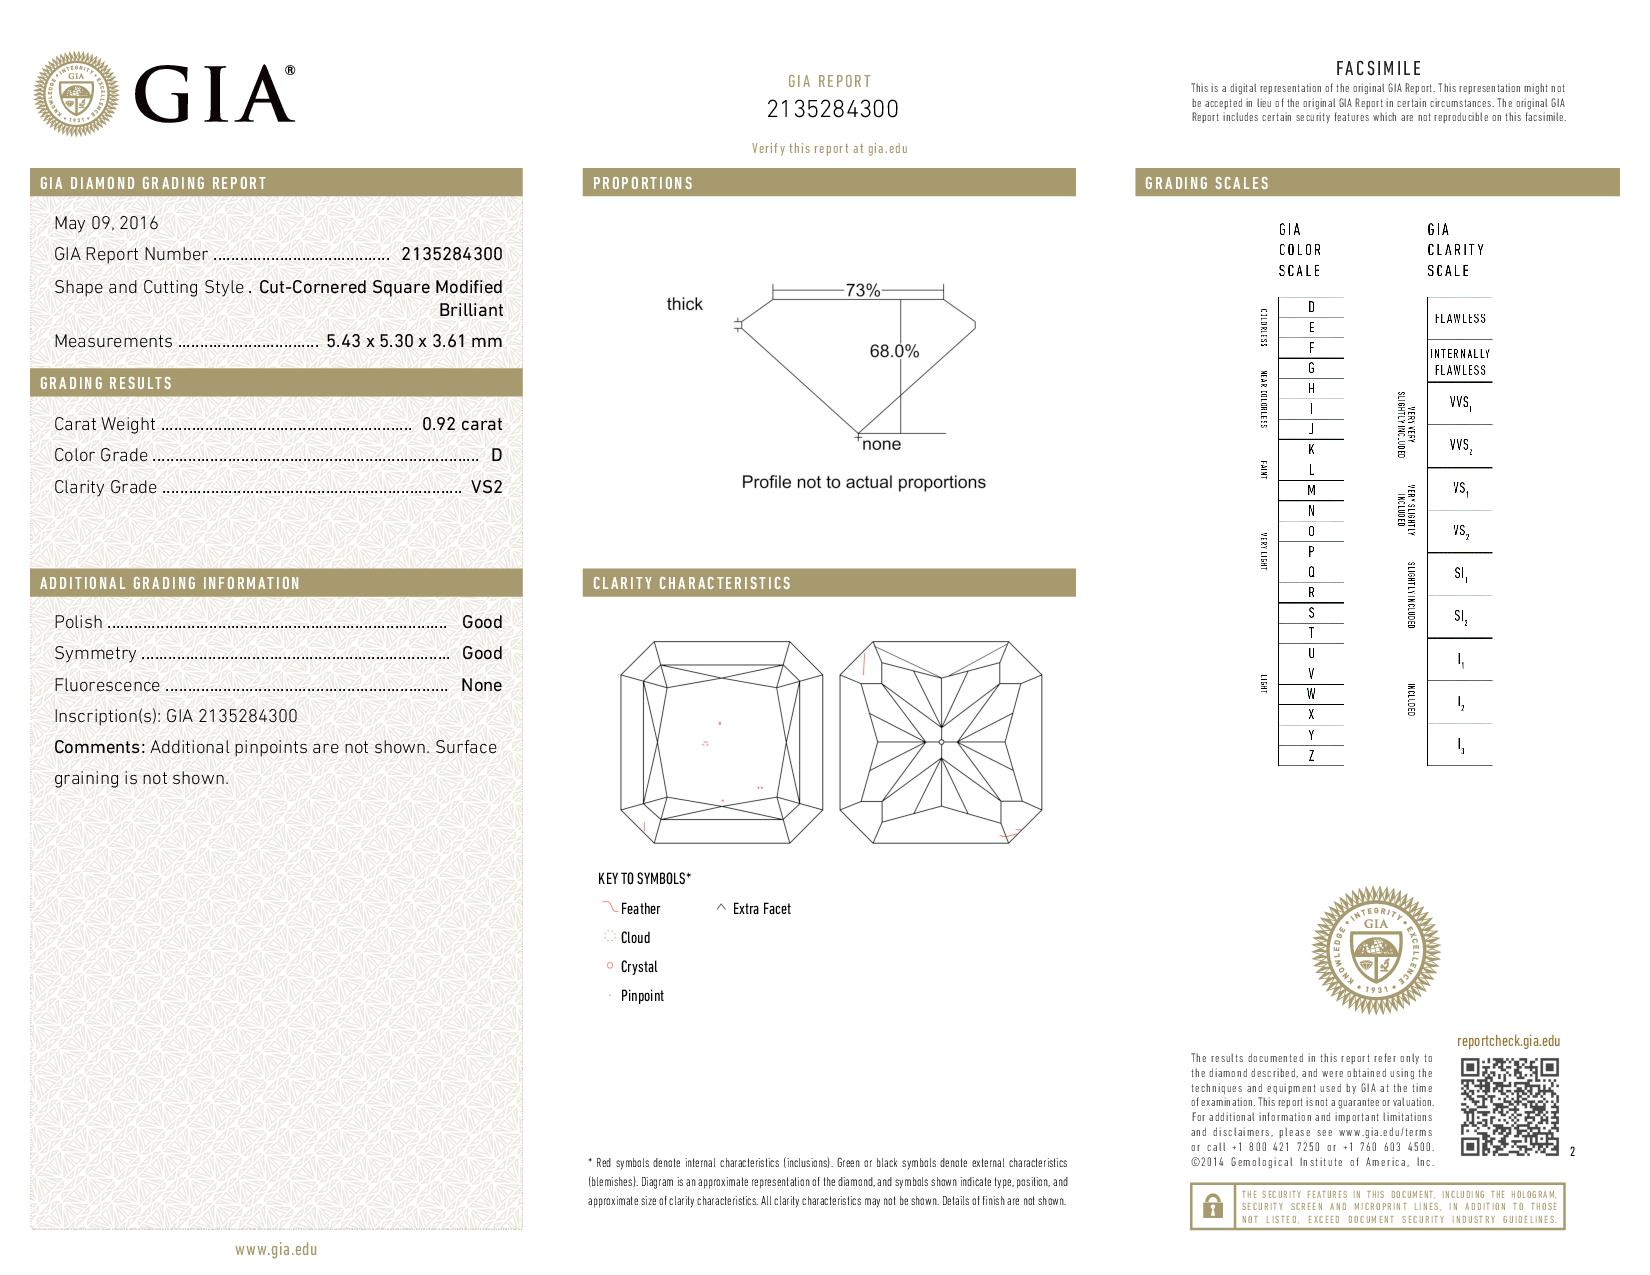 This is a 0.92 carat radiant shape, D color, VS2 clarity natural diamond accompanied by a GIA grading report.